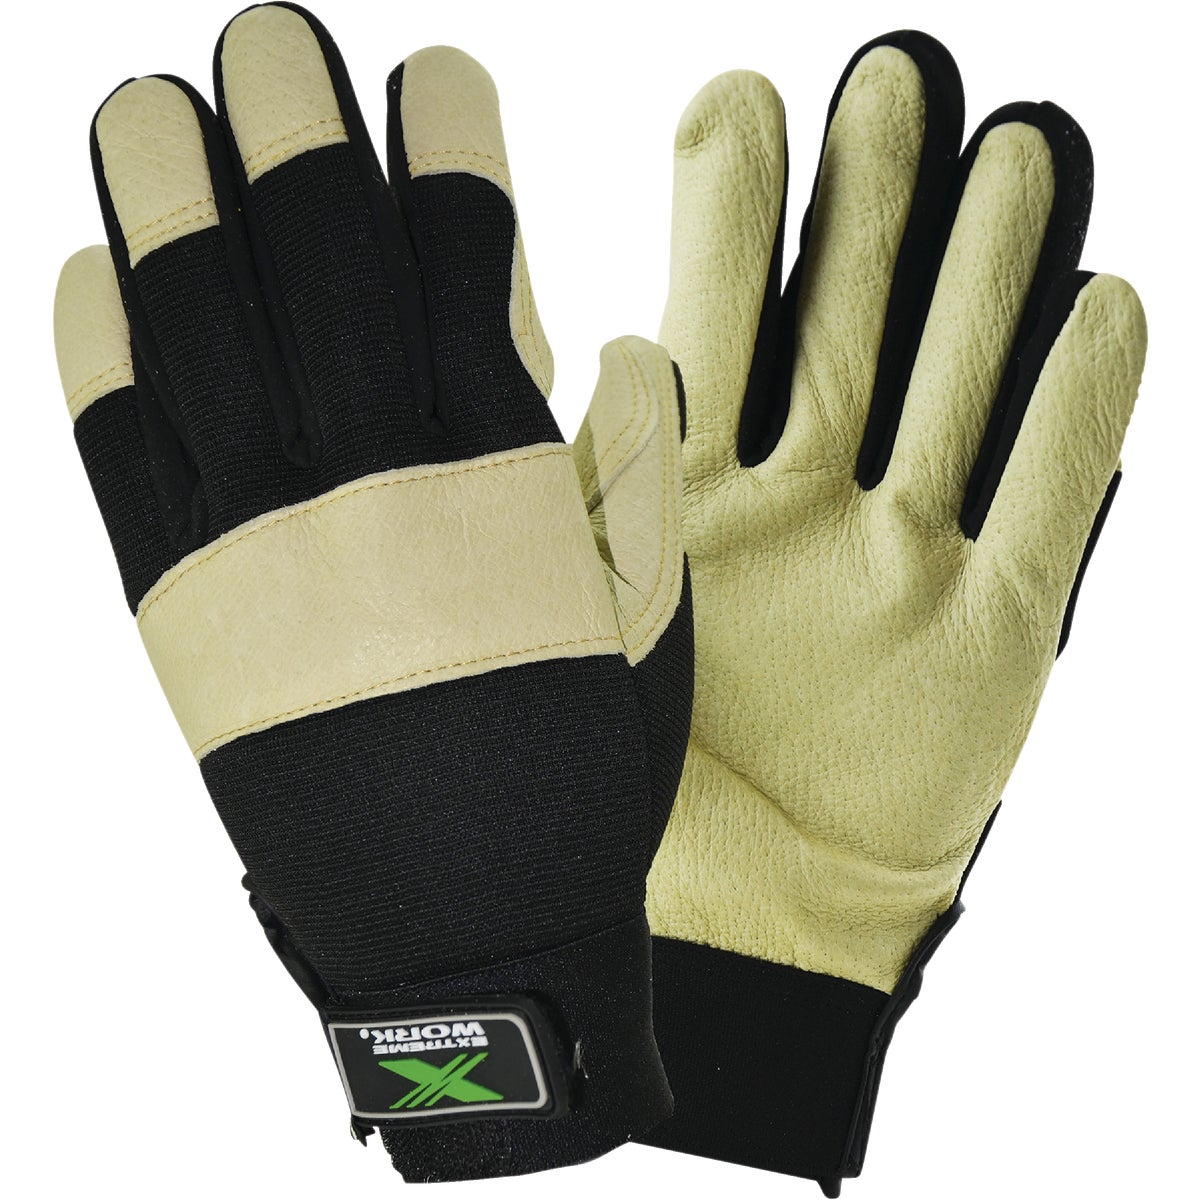 MED GRAIN PIGSKIN GLOVE - 3214M by Wells Lamont